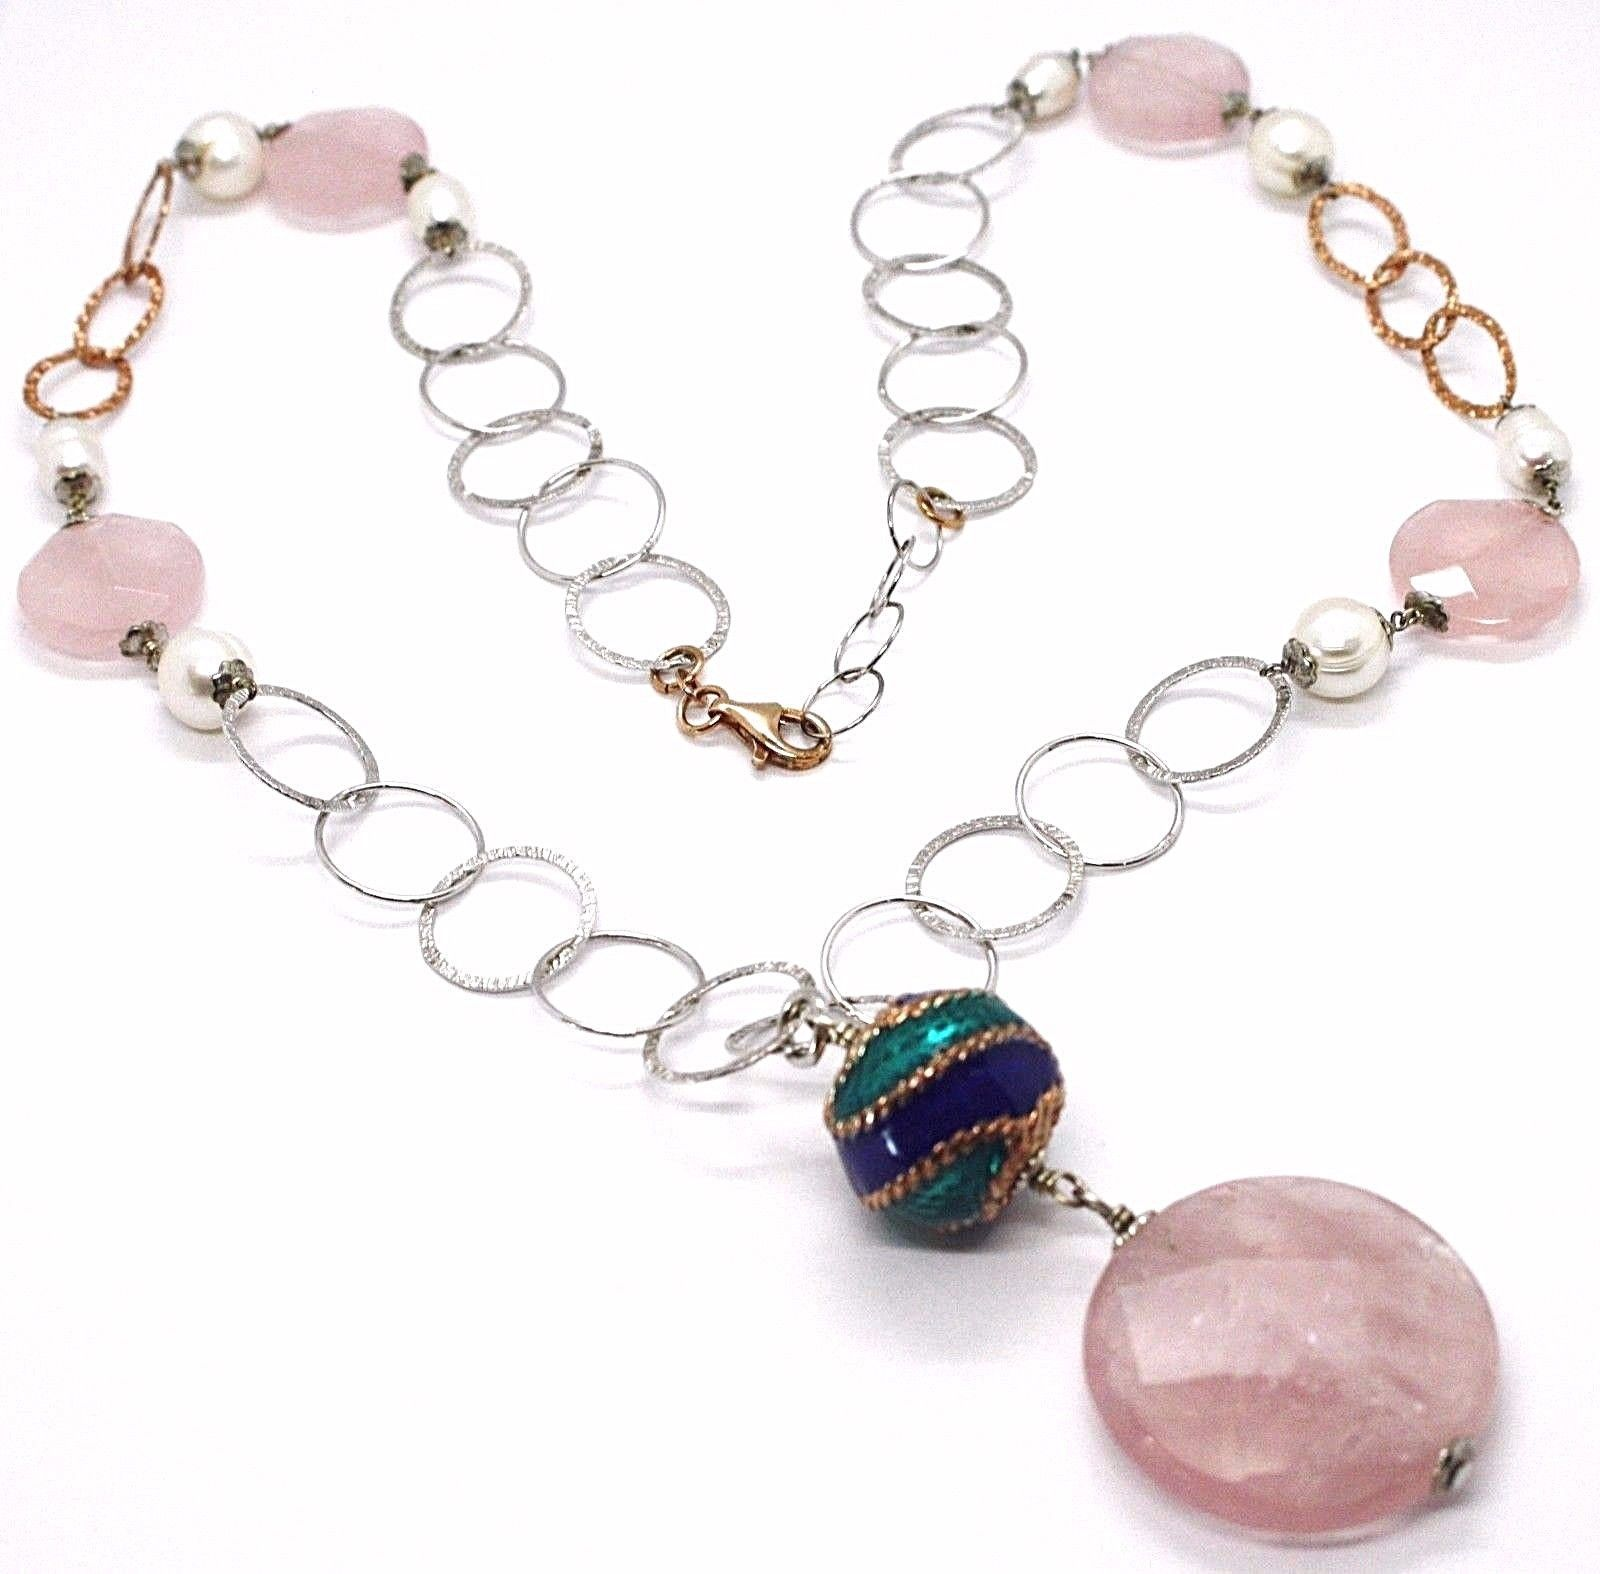 925 Silver Necklace, Rose Quartz Disk, Chain Rolo worked, Pearls, 70 cm